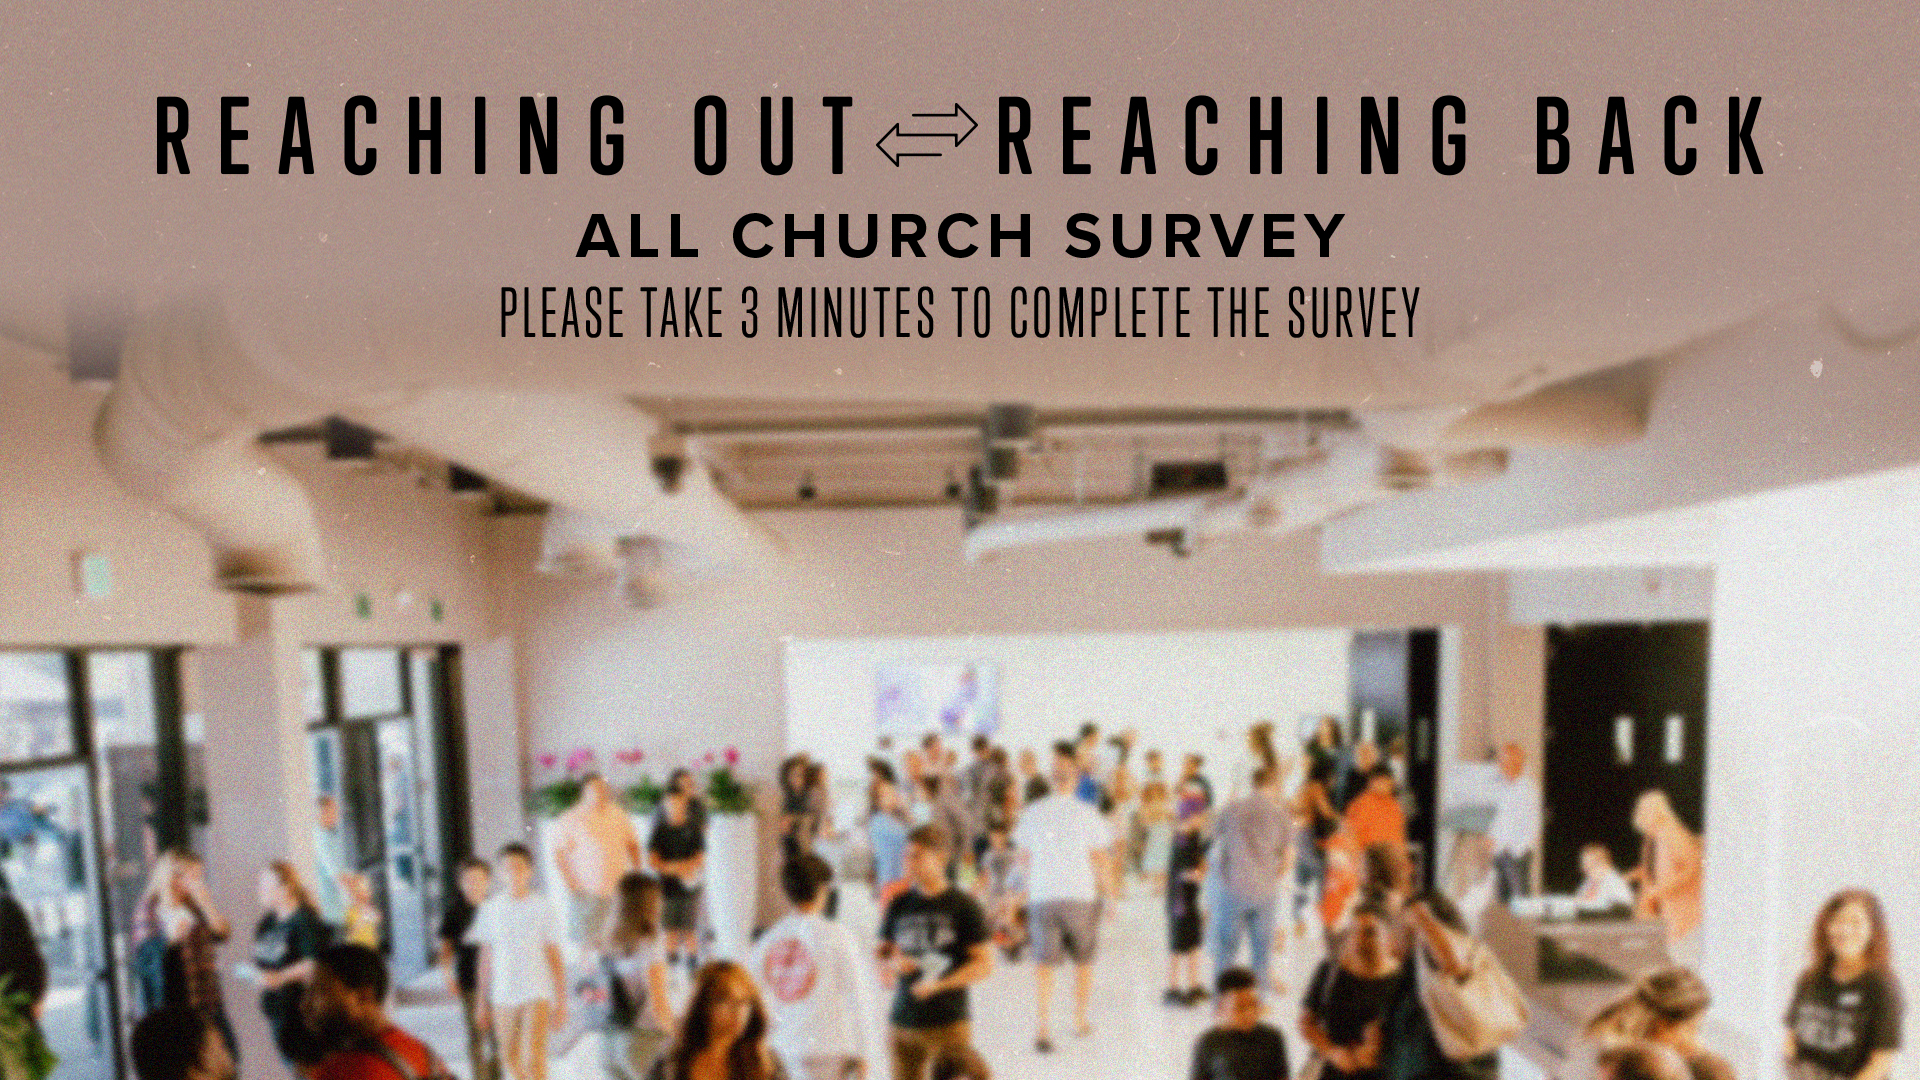 All Church Survey at the Orange County campus